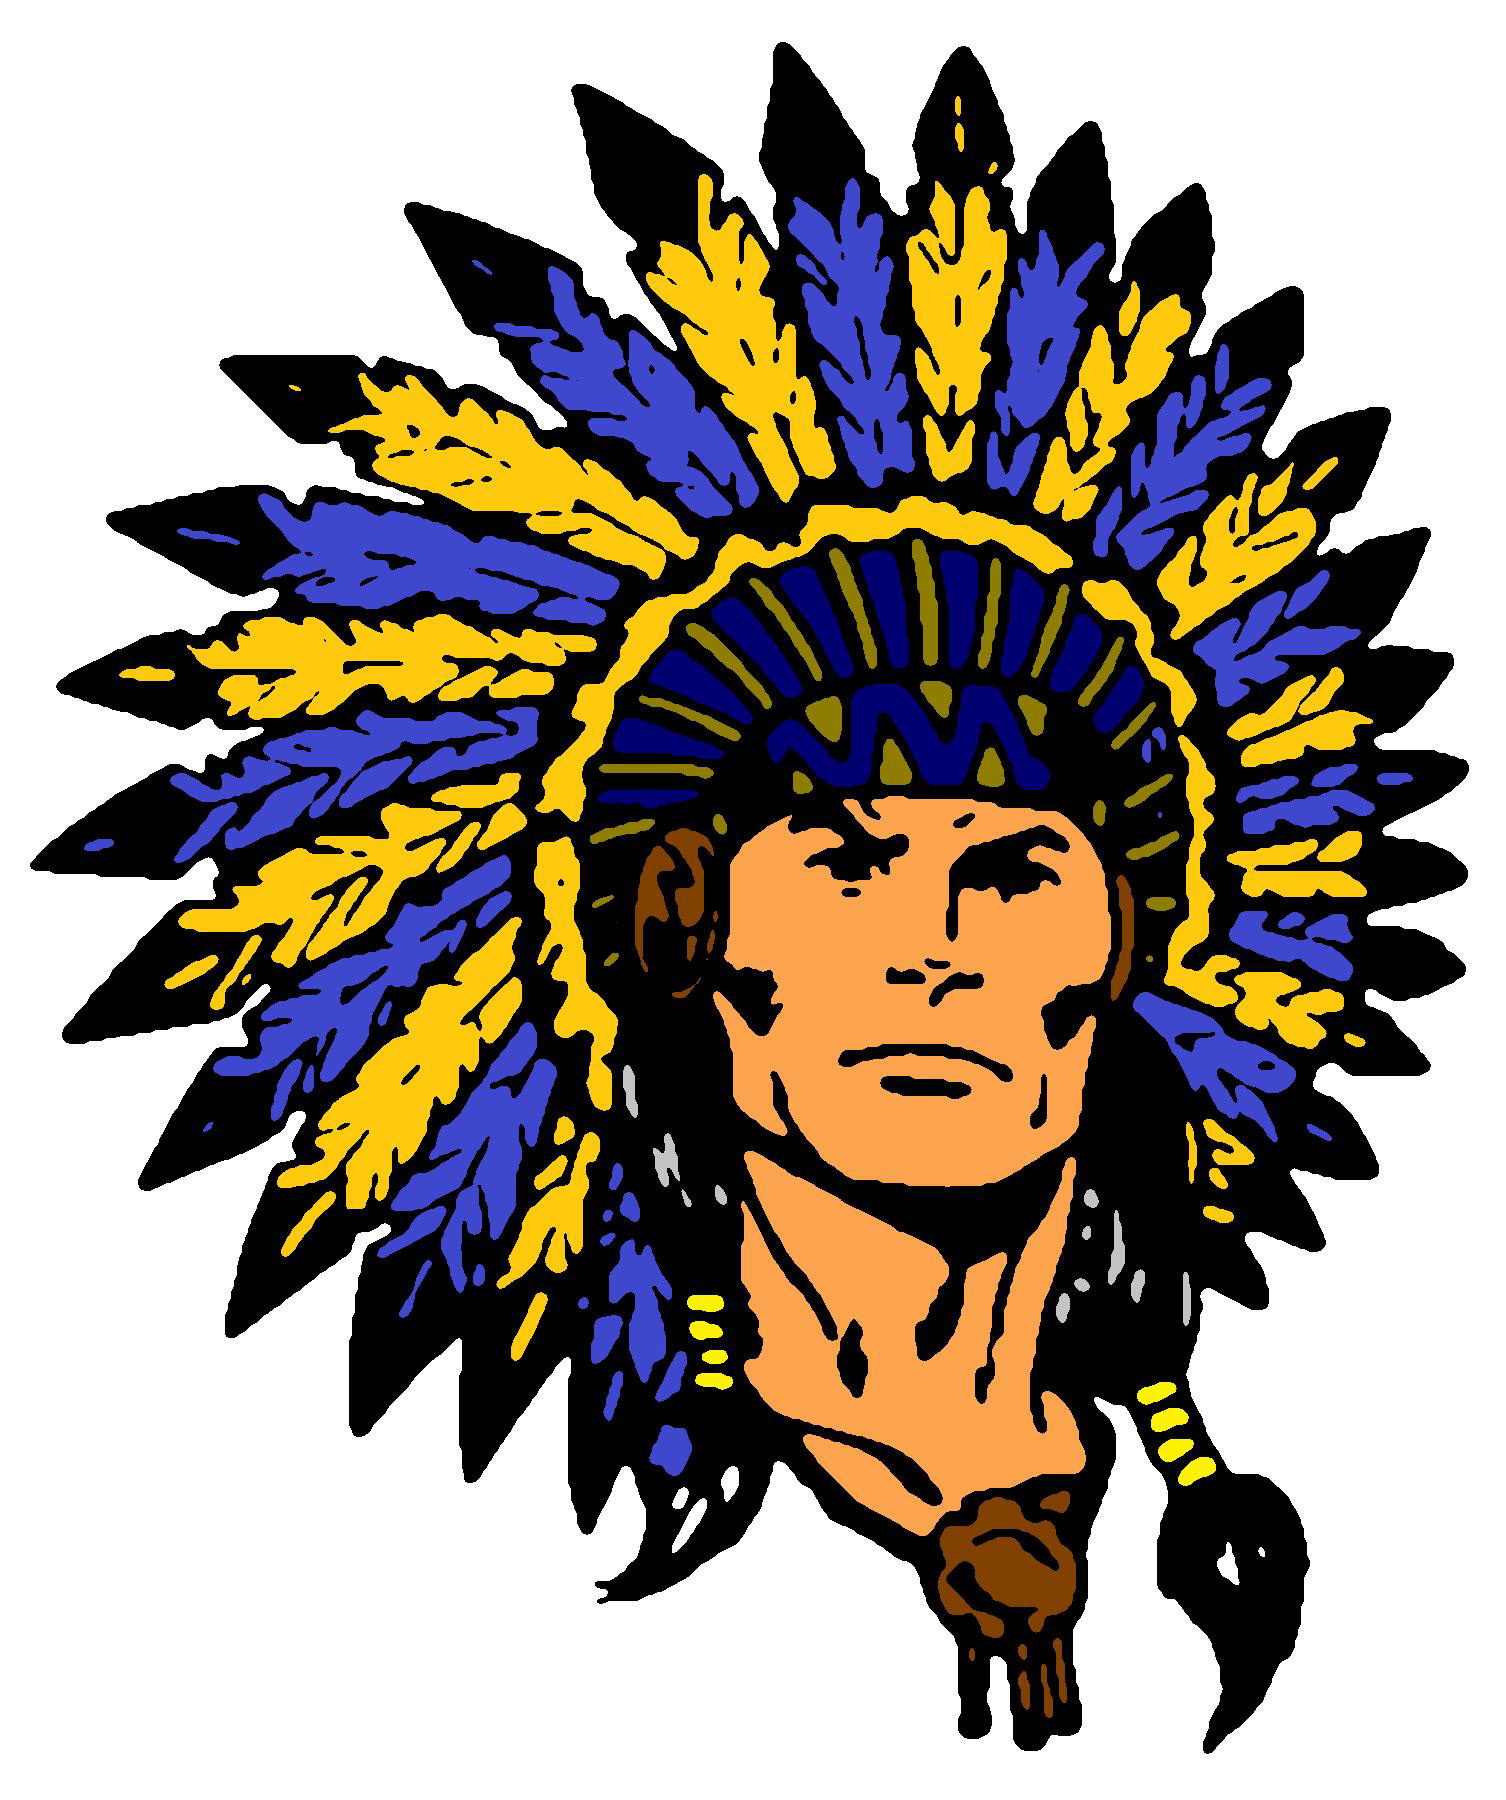 Clipart of the Indian Warrior logo free image.